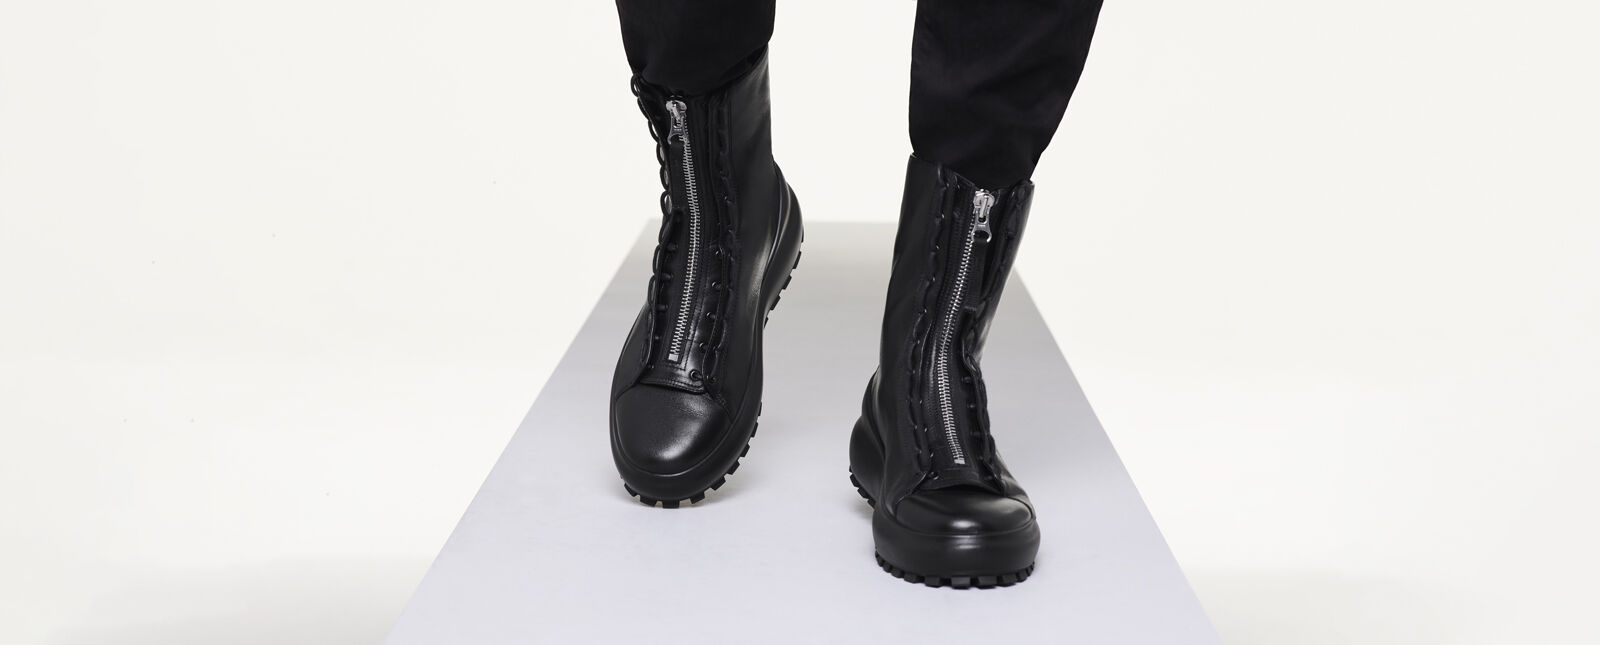 Close up shot of model wearing black pants inside military style black boots with chunky sole and metal zipper fastening.